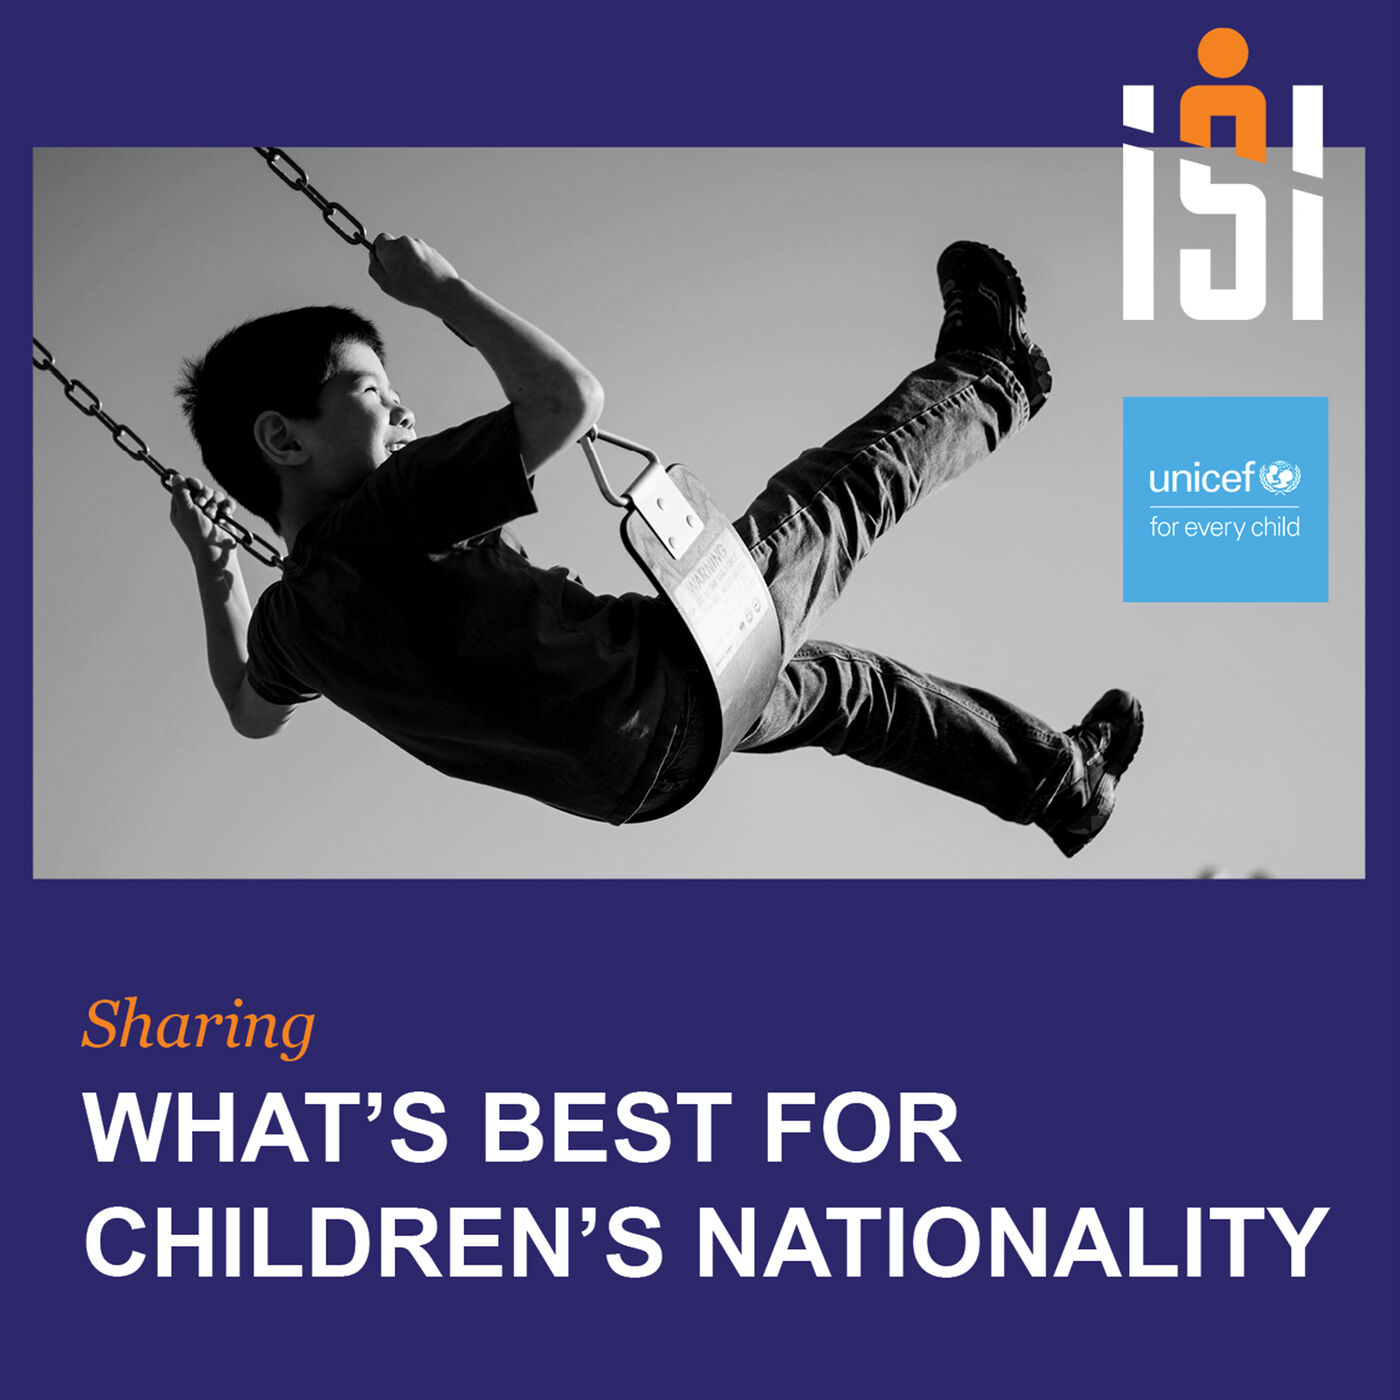 What's Best for Children's Nationality Podcast #6  Reflecting on what's best for children's nationality